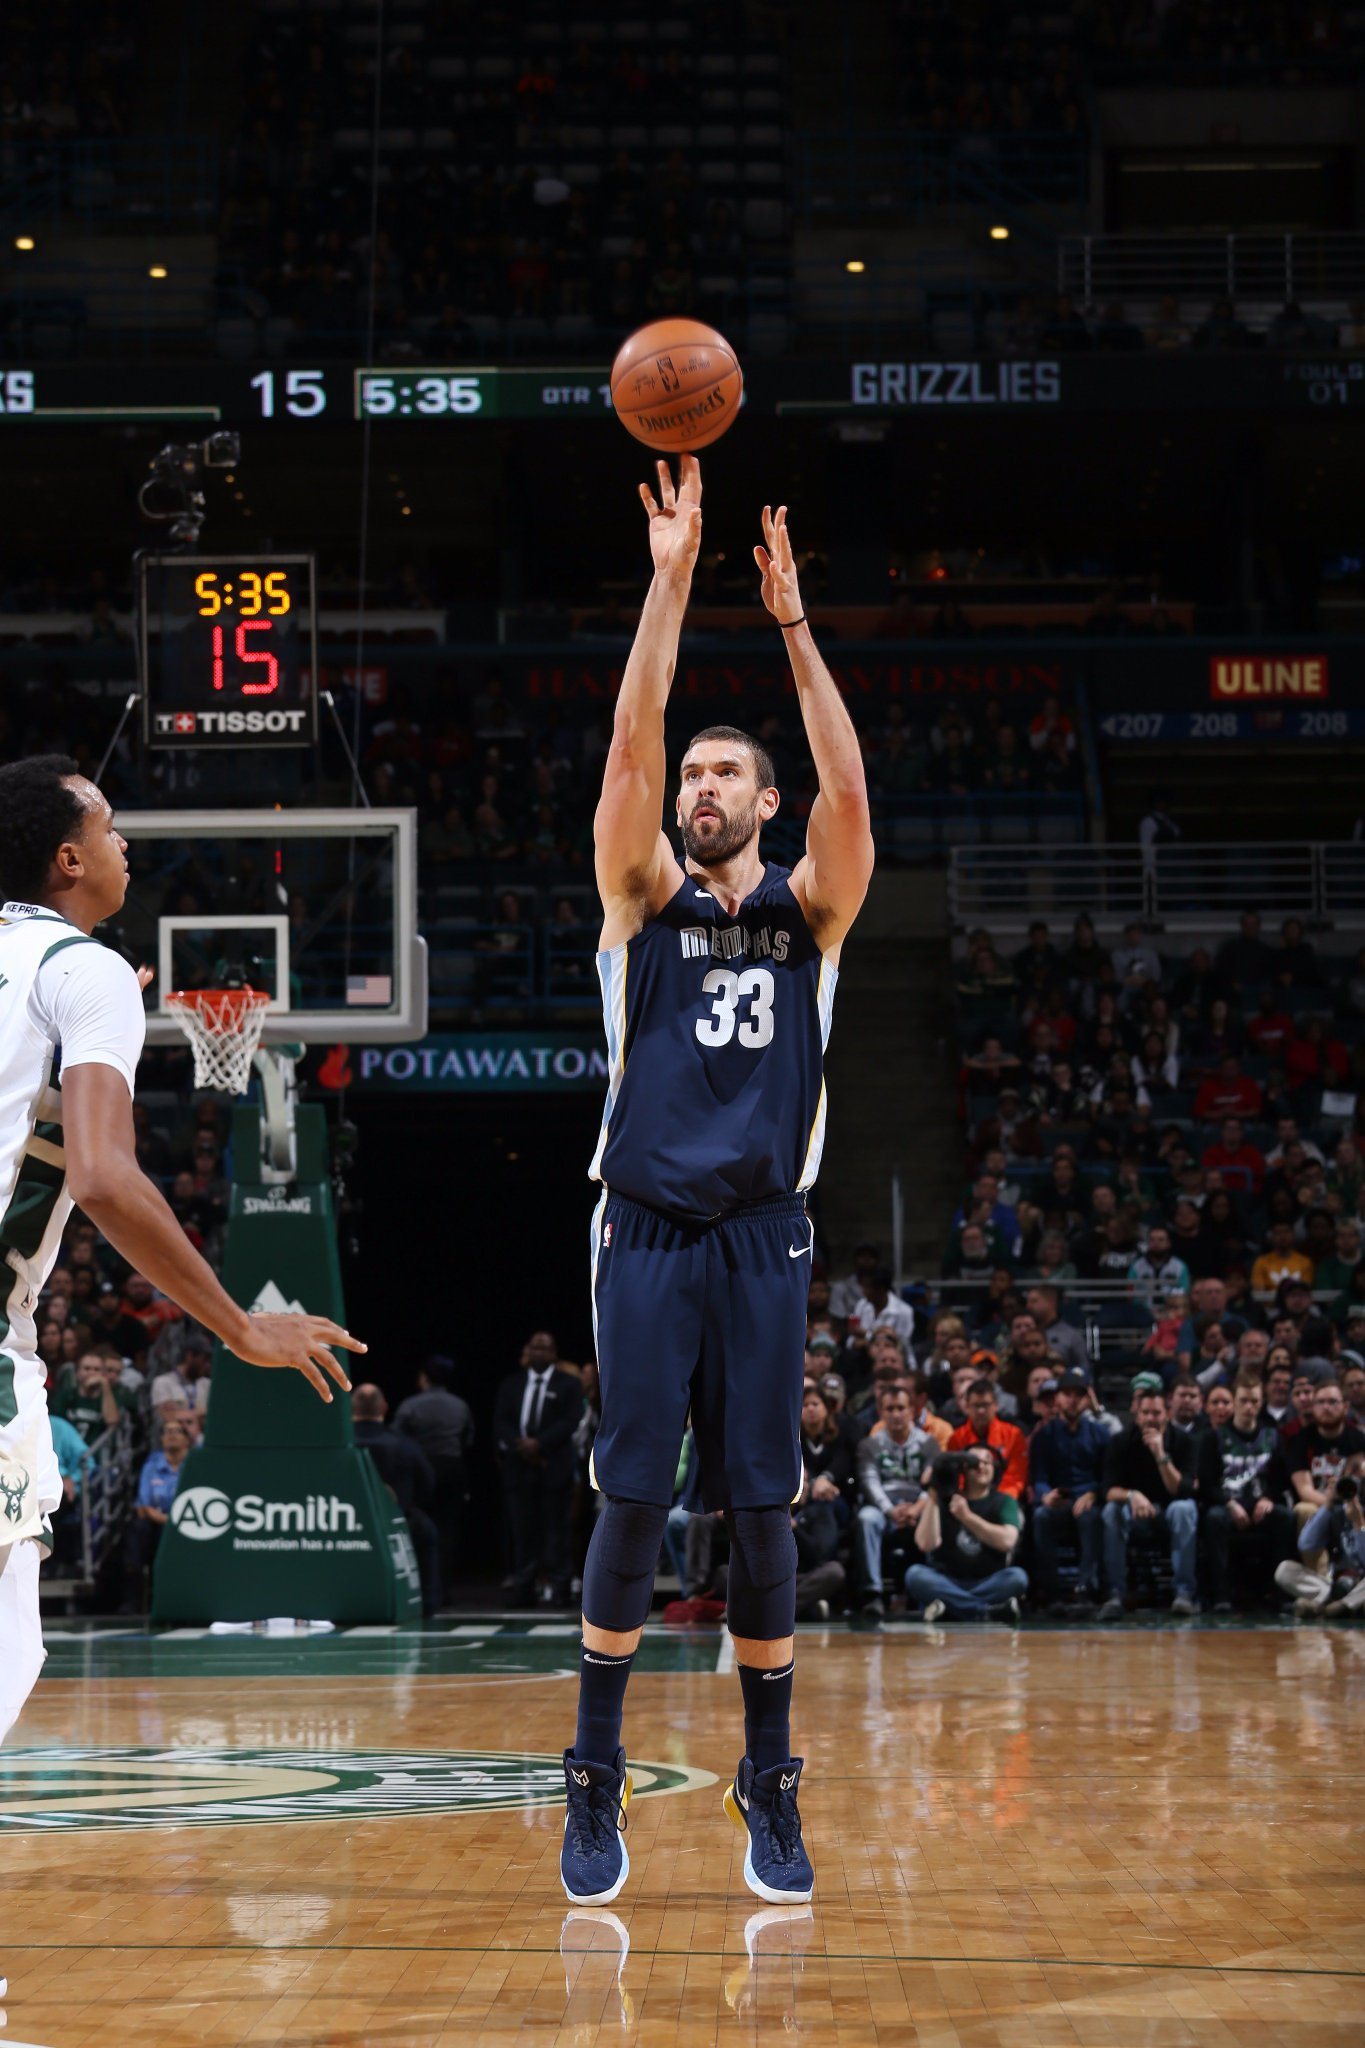 Halftime in MIL.  Gasol has 8 PTS, 6 REB & 5 AST. @memgrizz lead @Bucks 65-60 on road.   Giannis: 16 points. https://t.co/5Az9ce3HjB